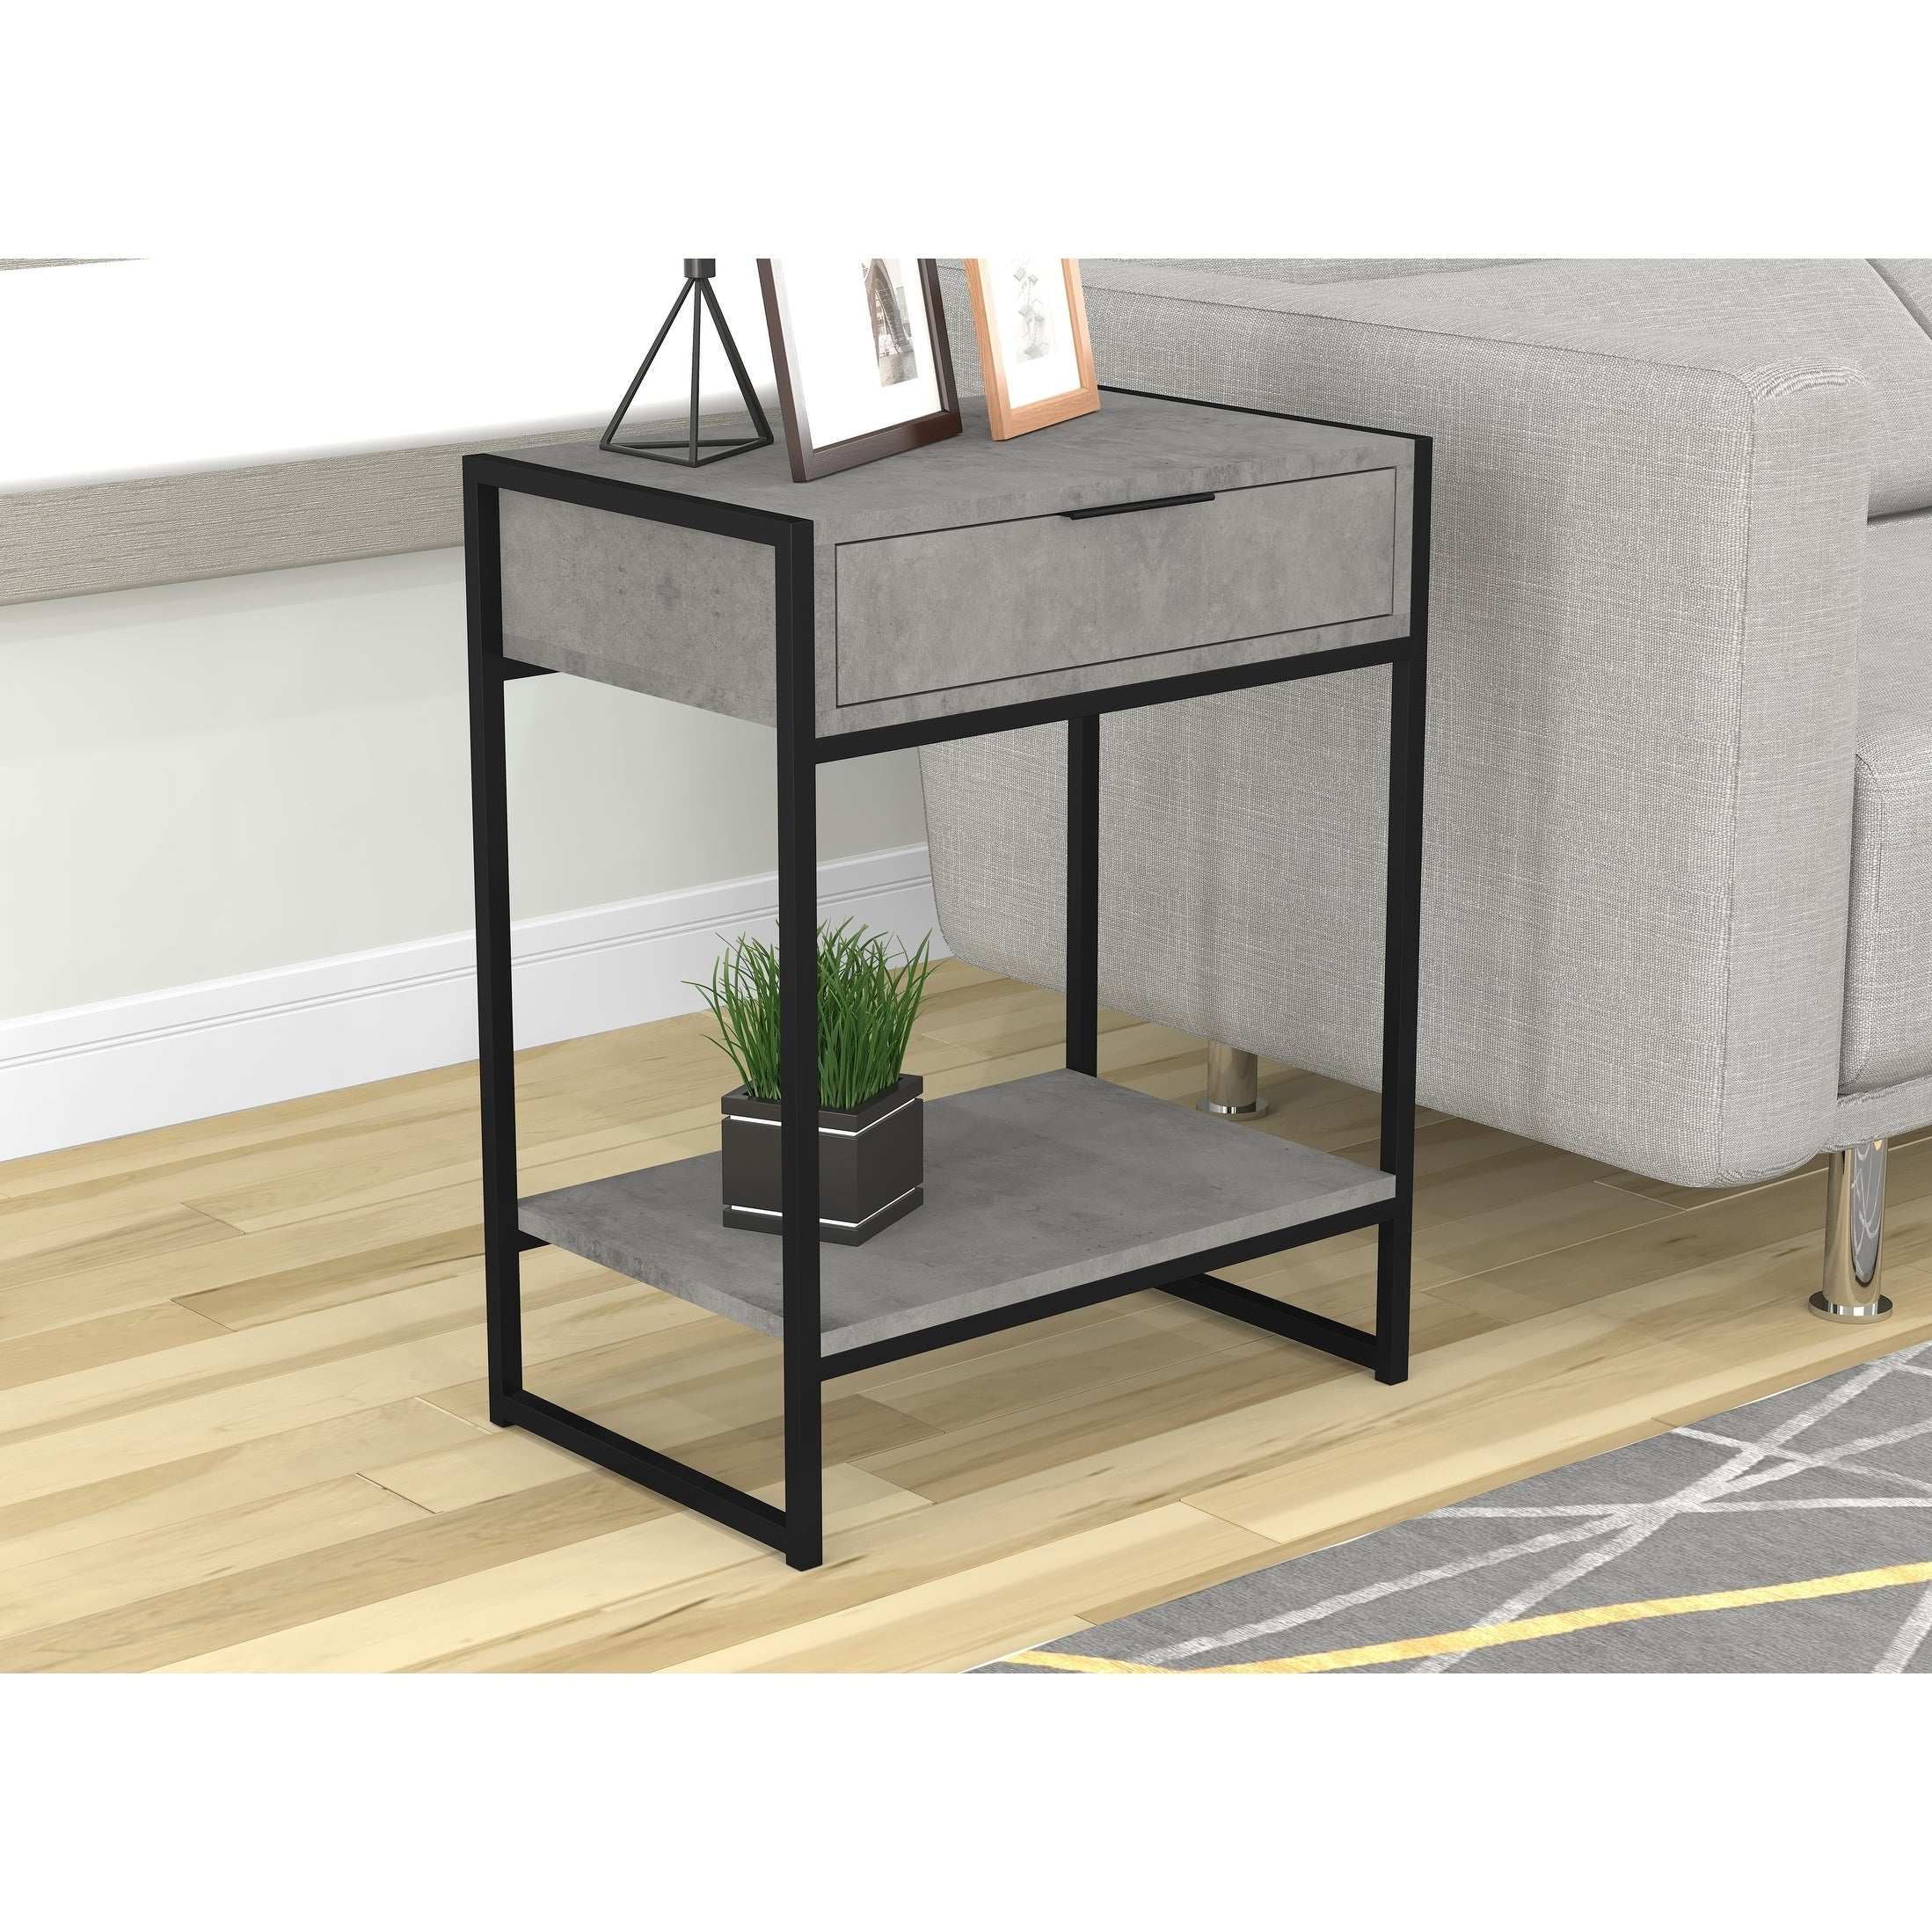 Safdie Co Grey Cement Wood Grain Finish With Black Metal Frame End Table Night Table Accent Table On Sale Overstock 26280587